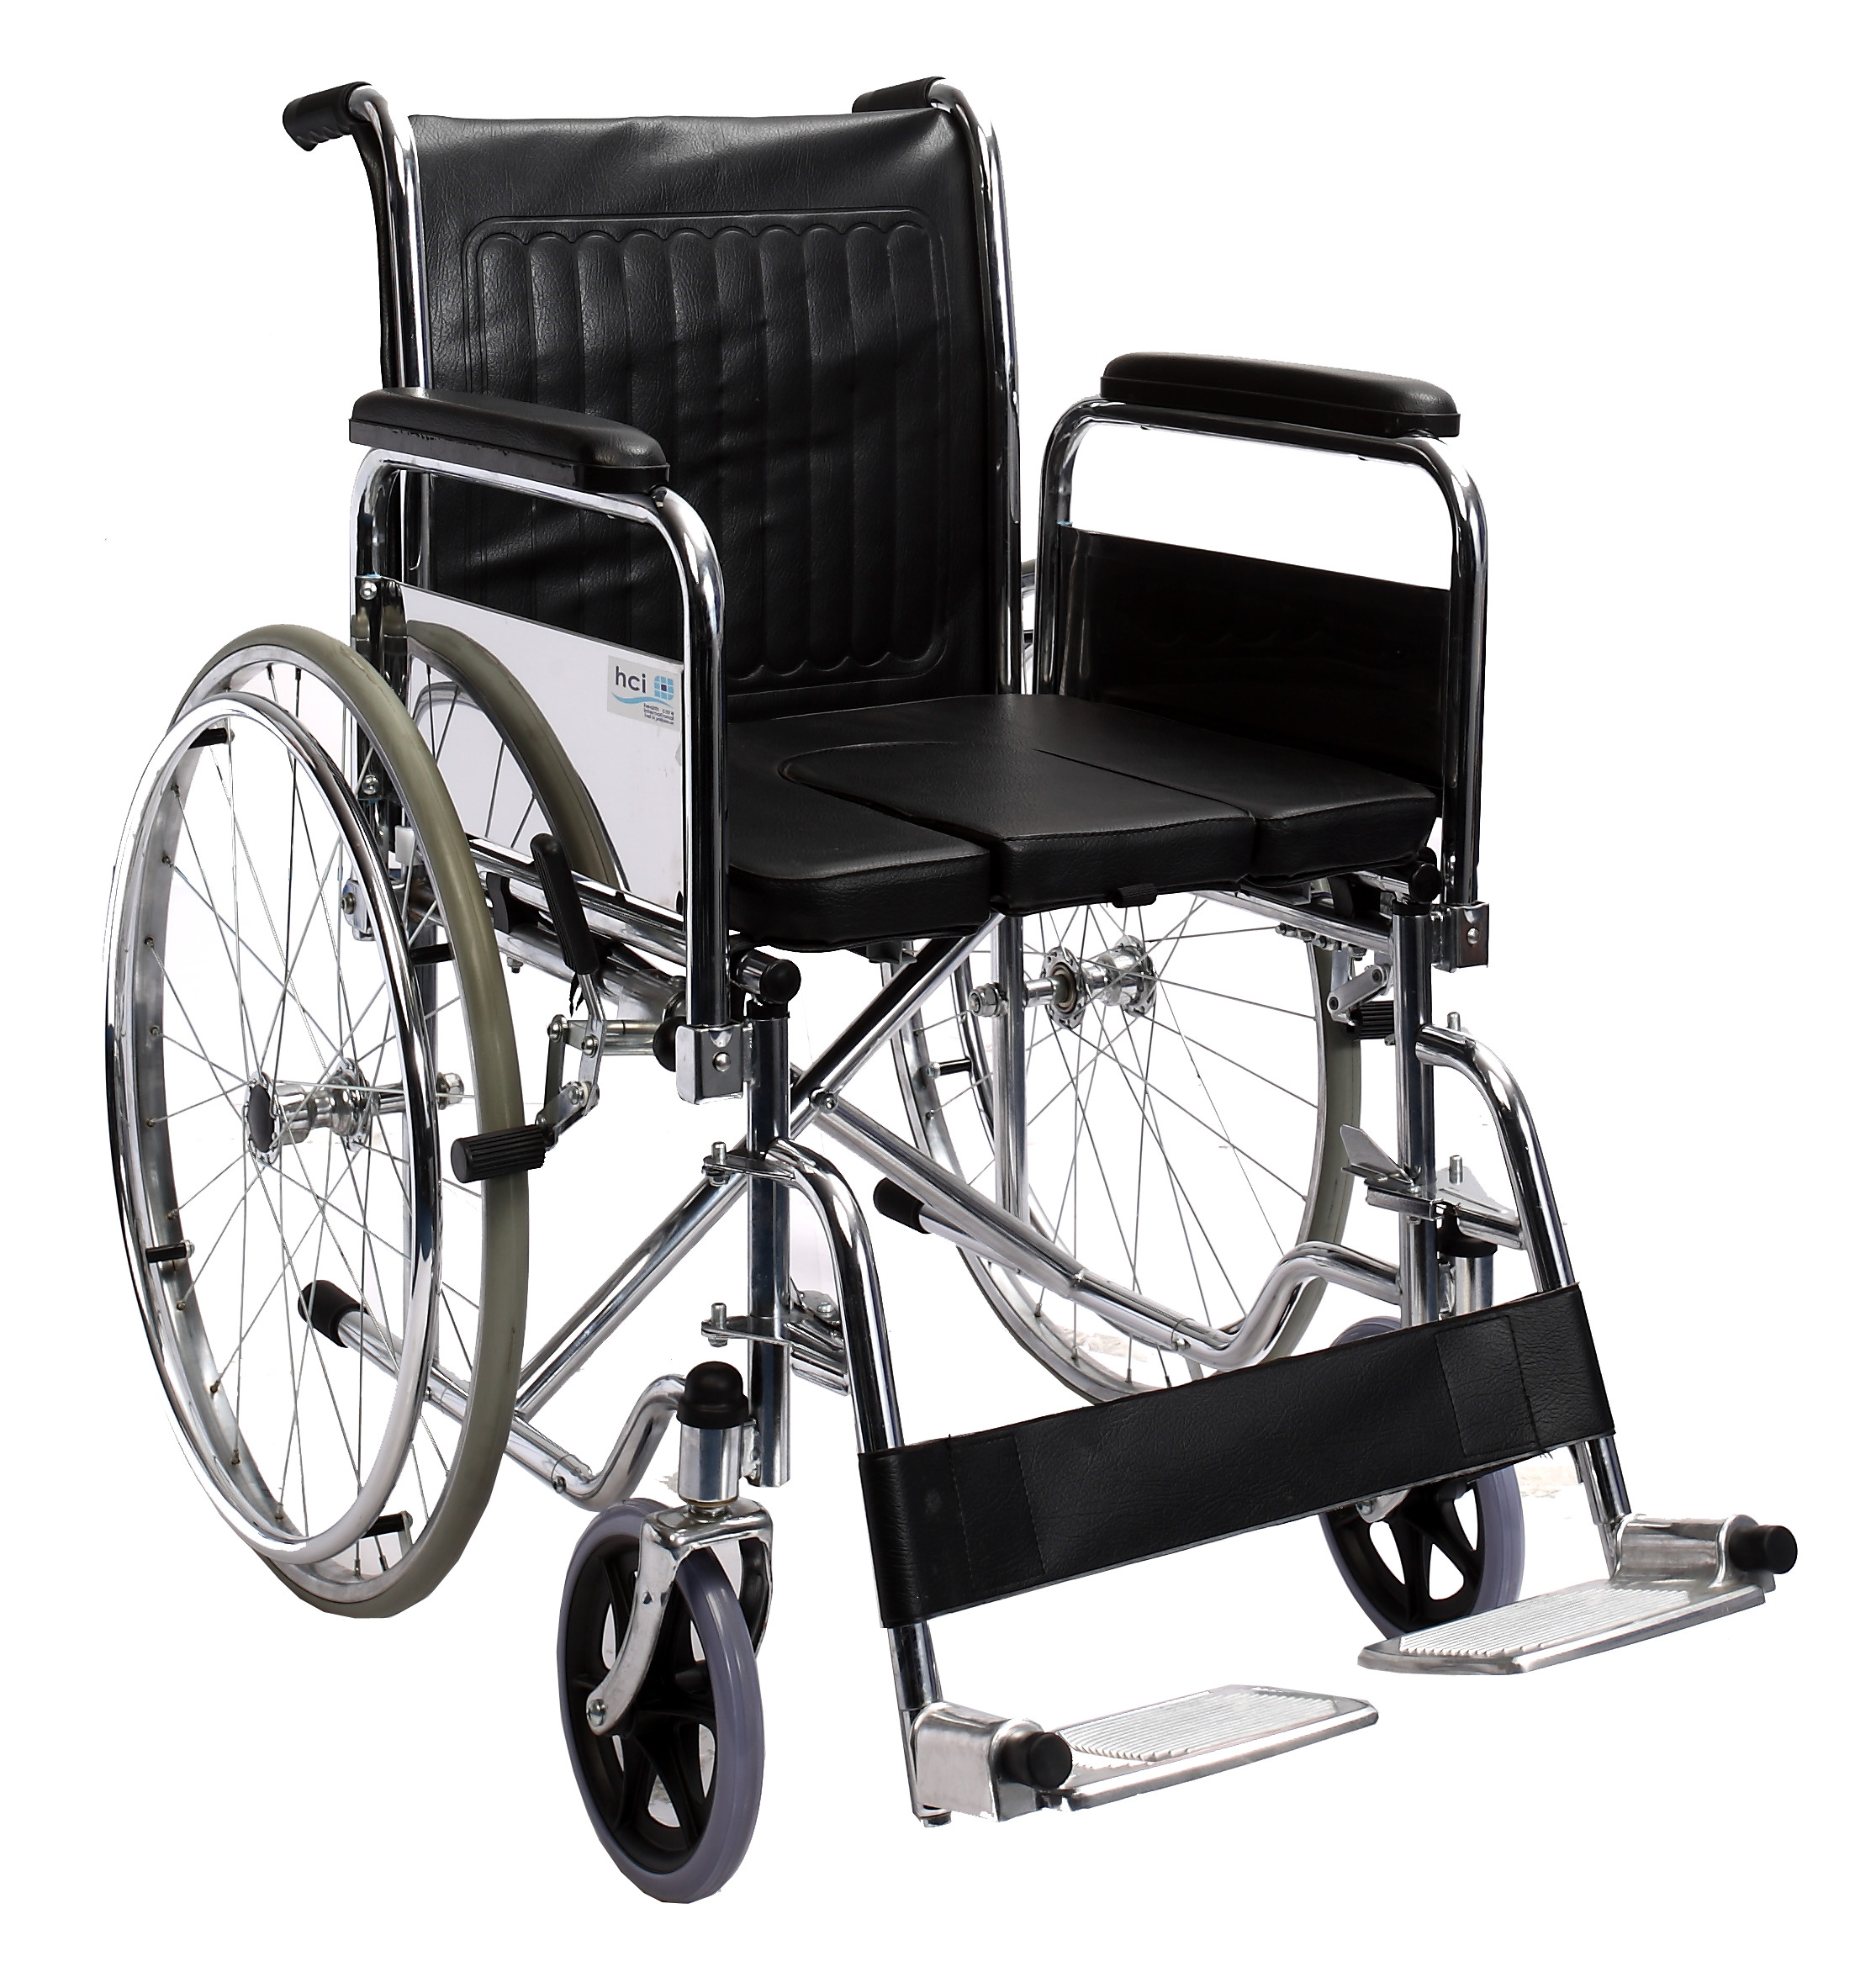 wheel chair buy online french bistro table and chairs uk panacea